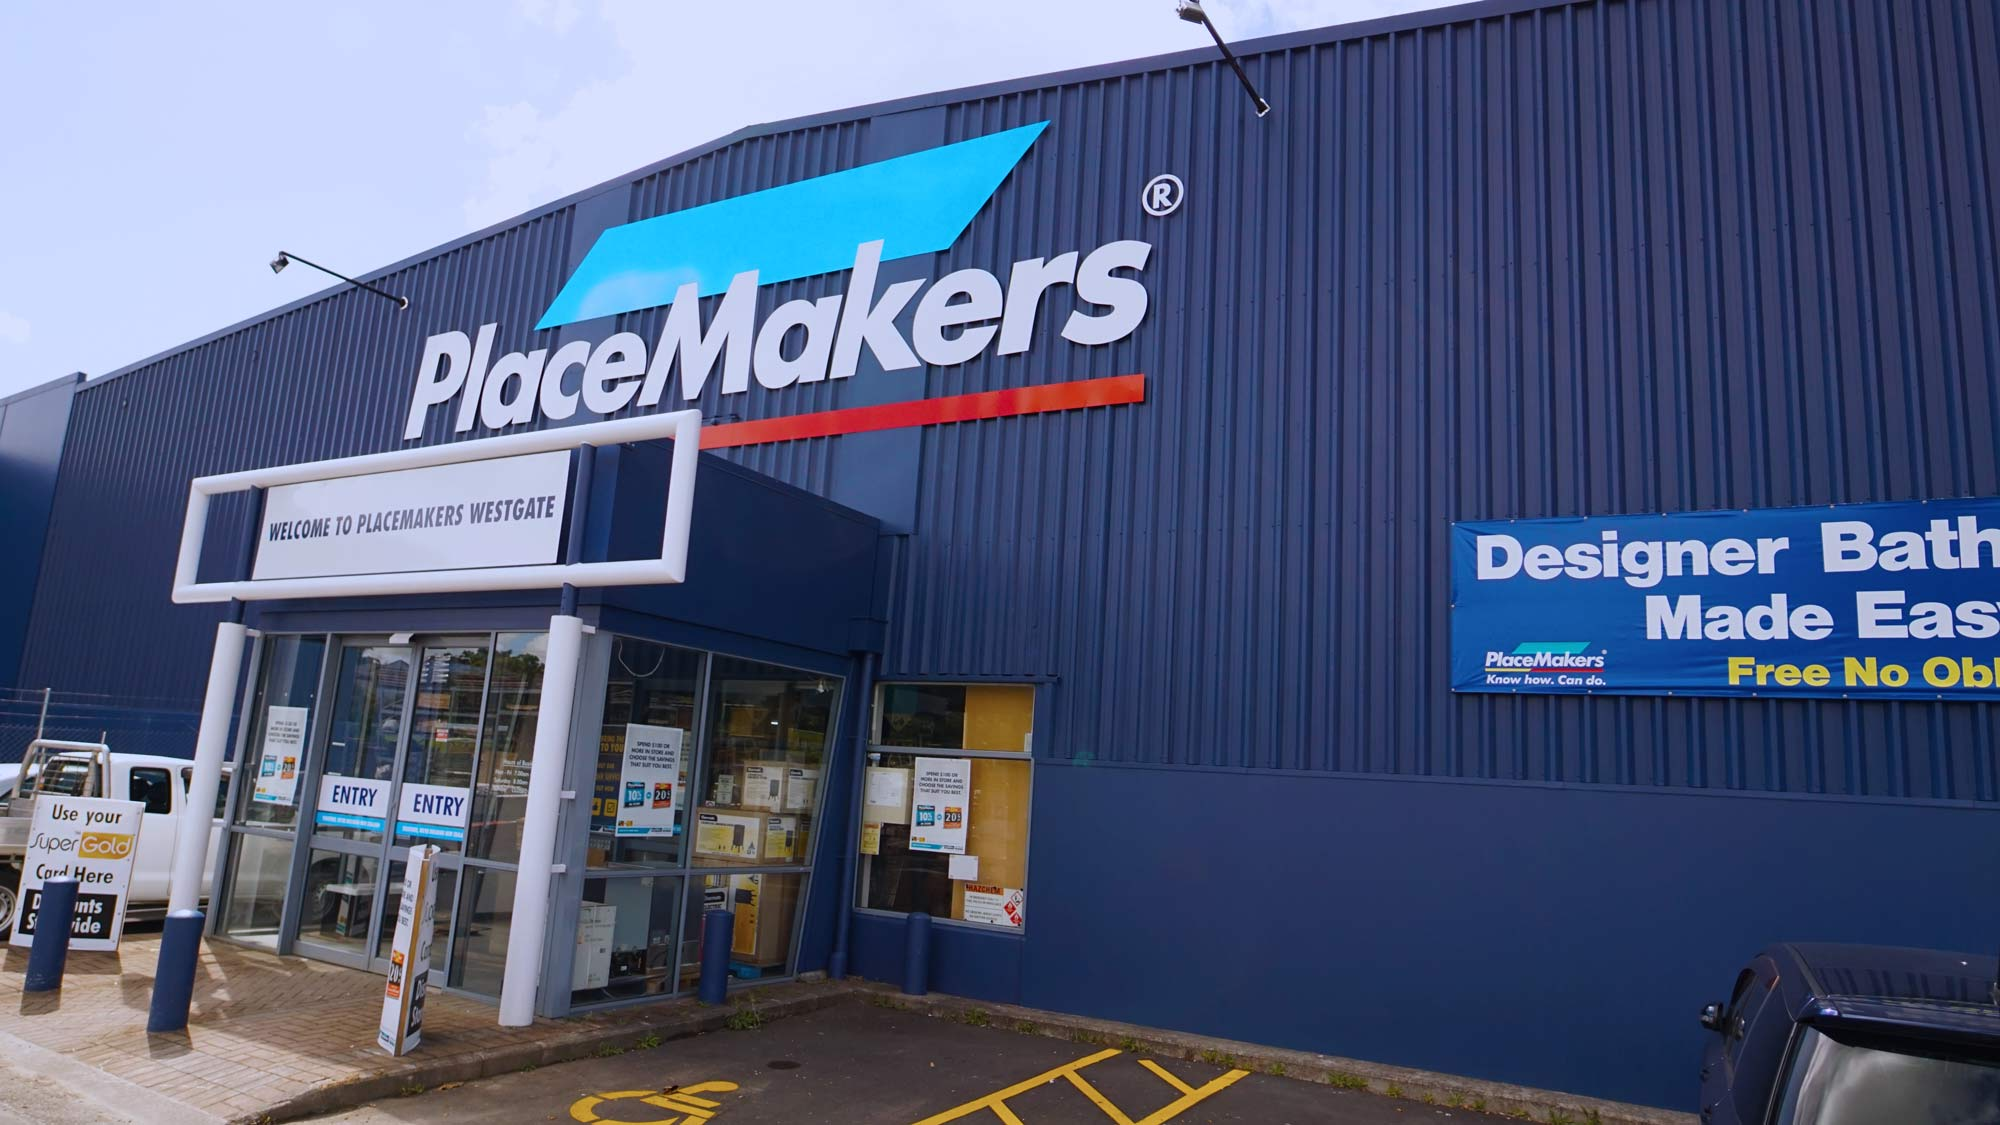 Placemakers Westgate